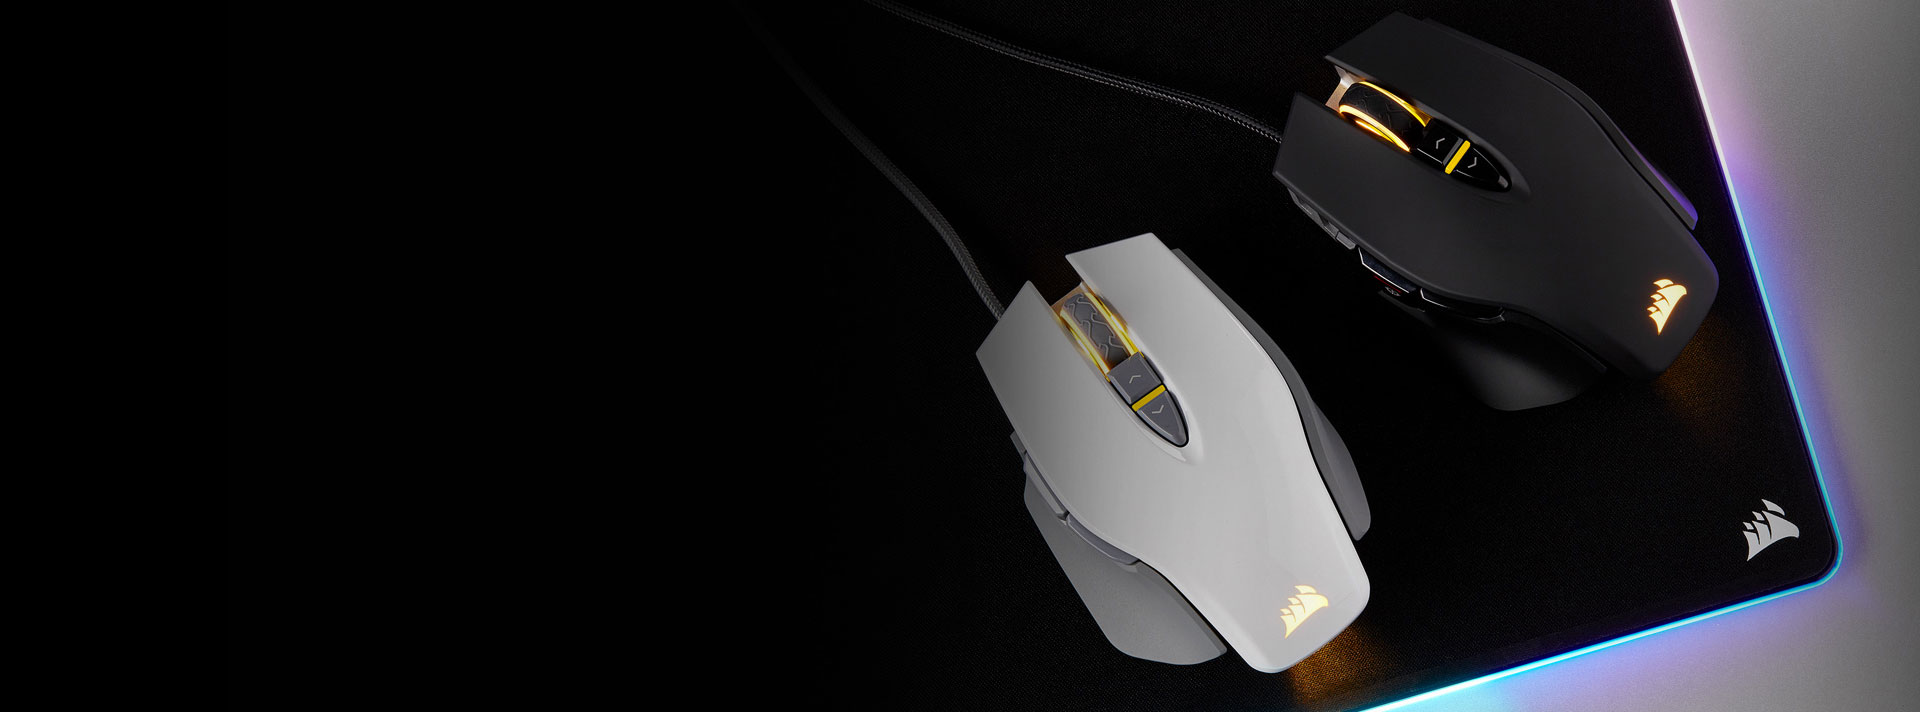 Gaming Mice | CORSAIR